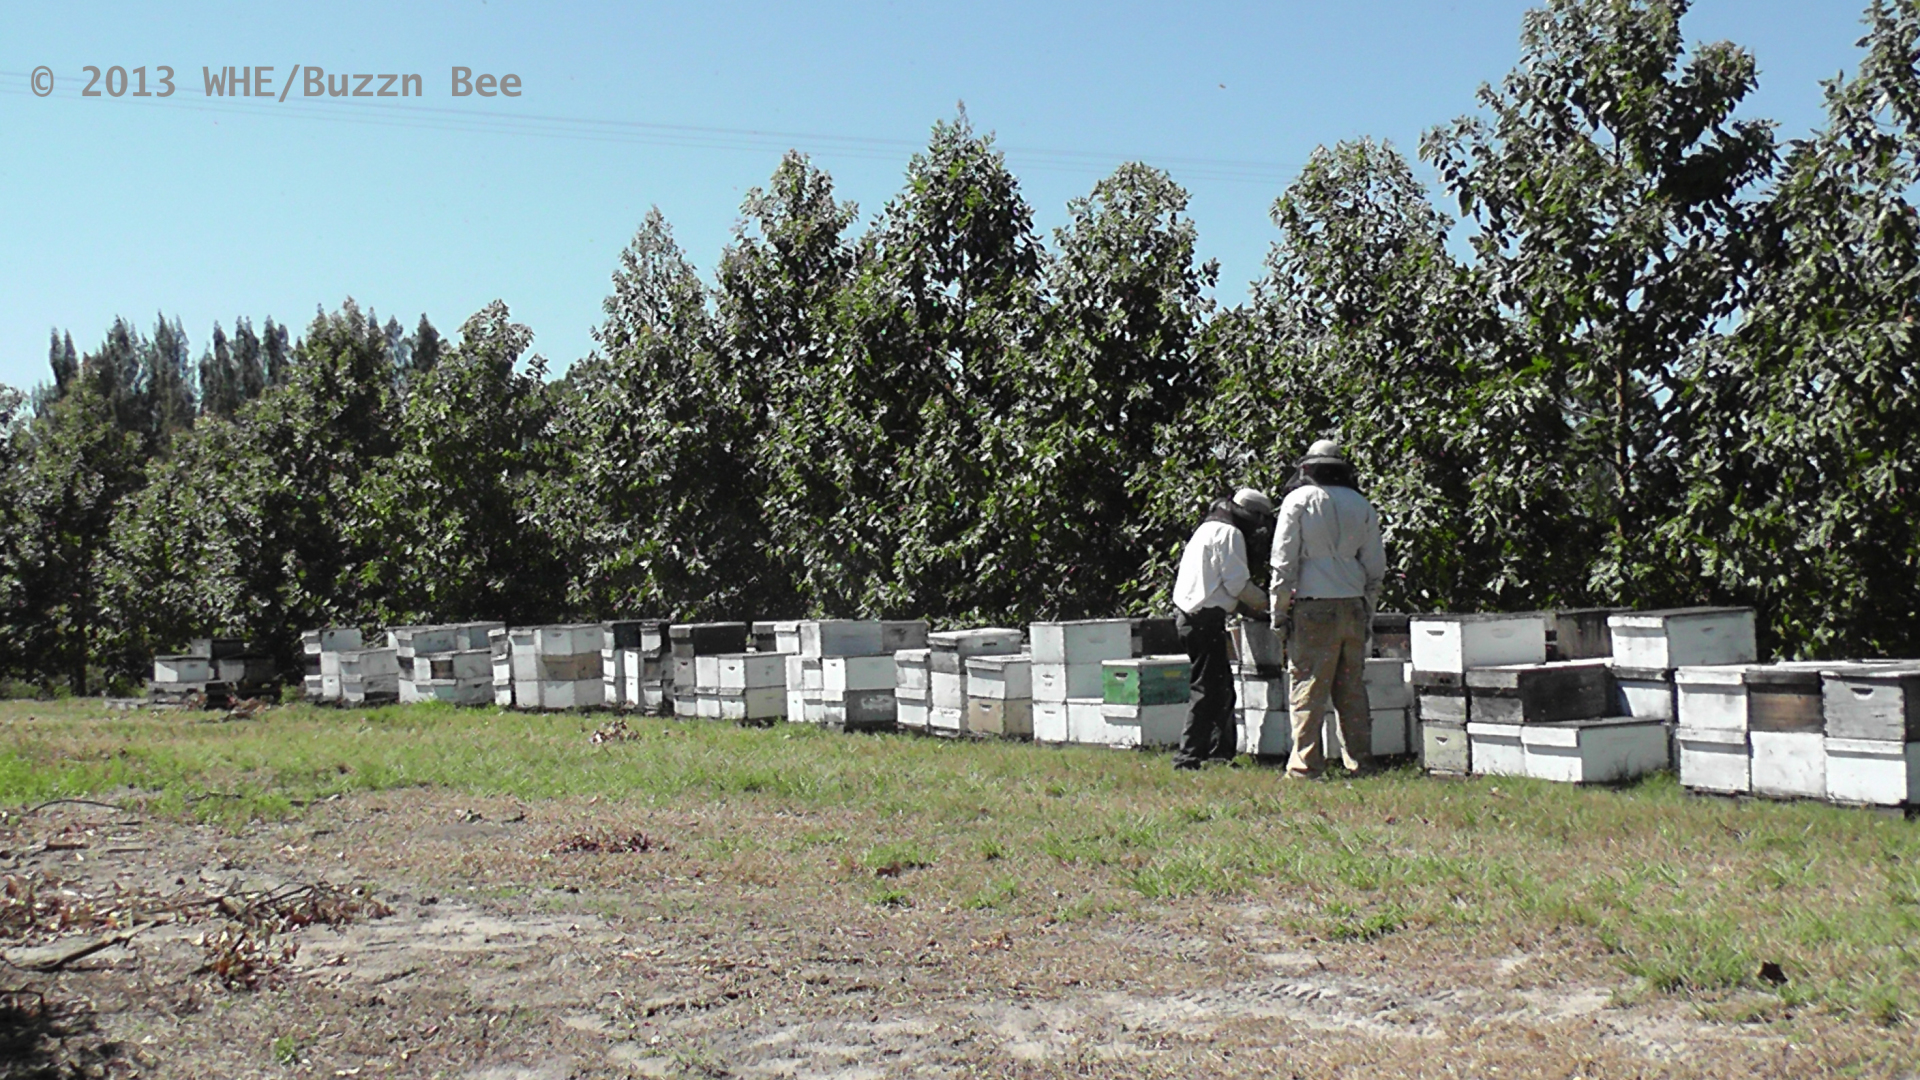 David and Brian inspect the hives